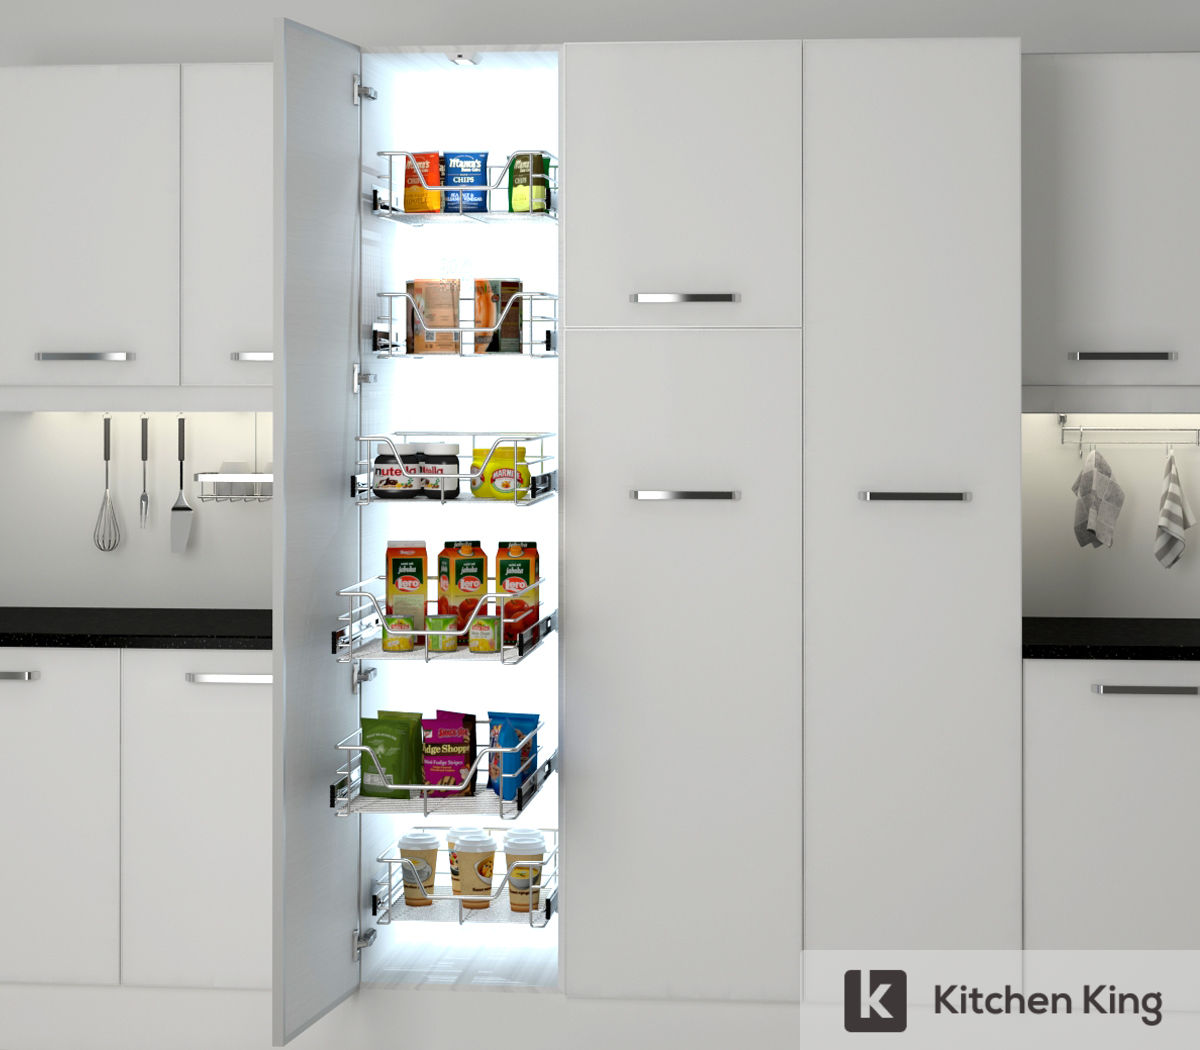 Kitchen Cabinets Accessories: Kitchen Accessories, Kitchen Cabinet Pull Out In Dubai